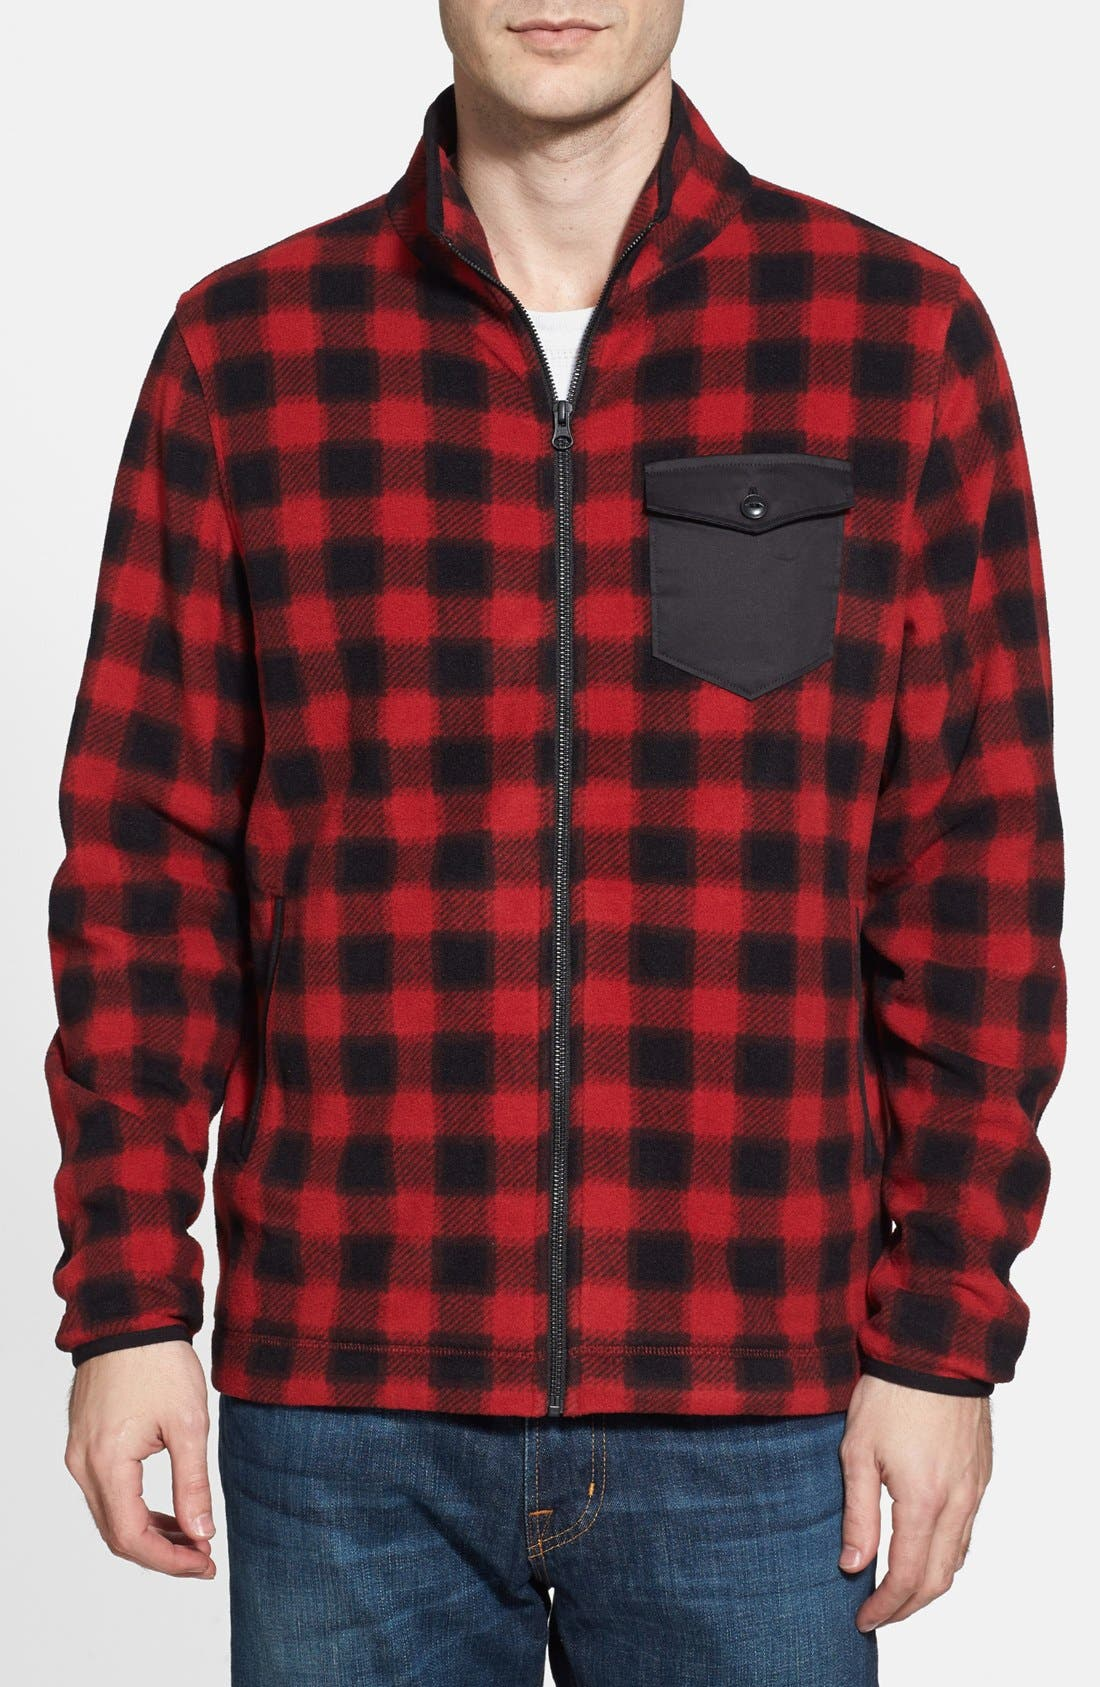 Alternate Image 1 Selected - Wallin & Bros. Trim Fit Plaid Full Zip Fleece